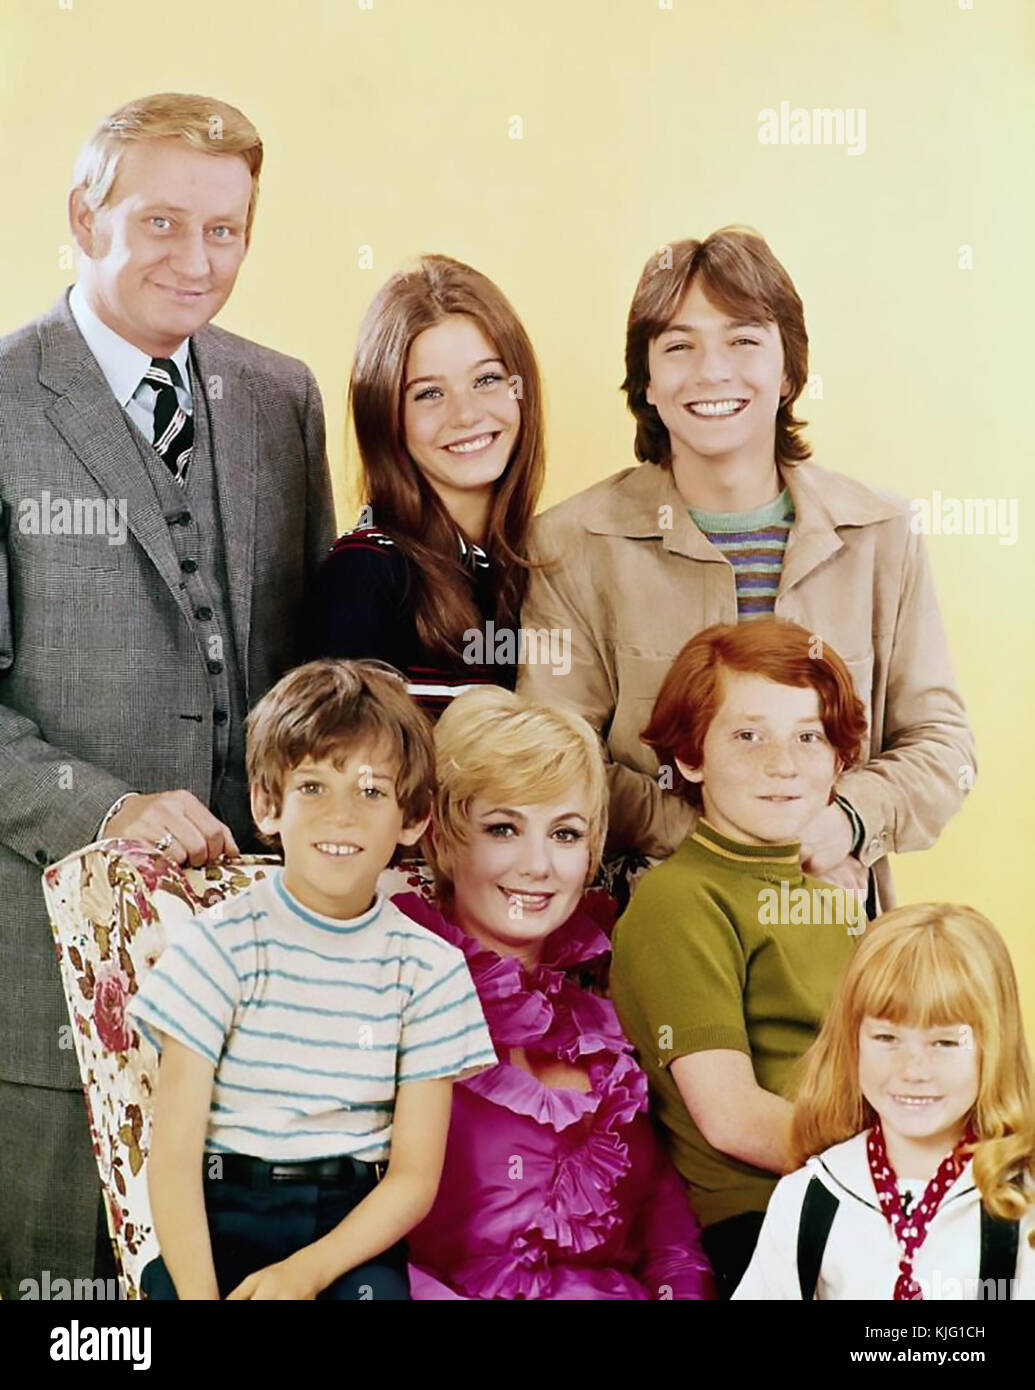 THE PARTRIDGE FAMILY Screen Gems American TV series 1970-1974 with